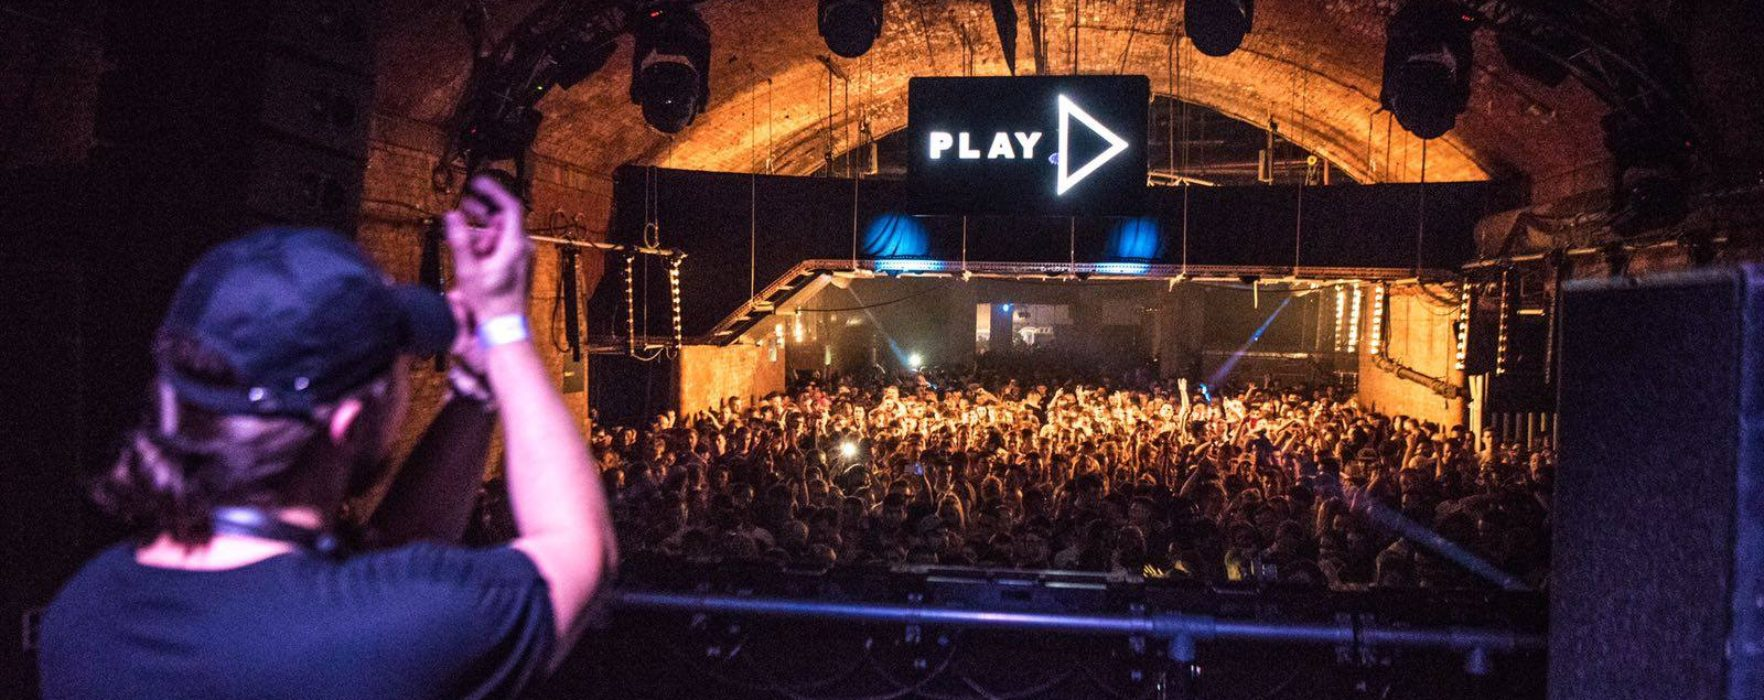 WHP /// Play